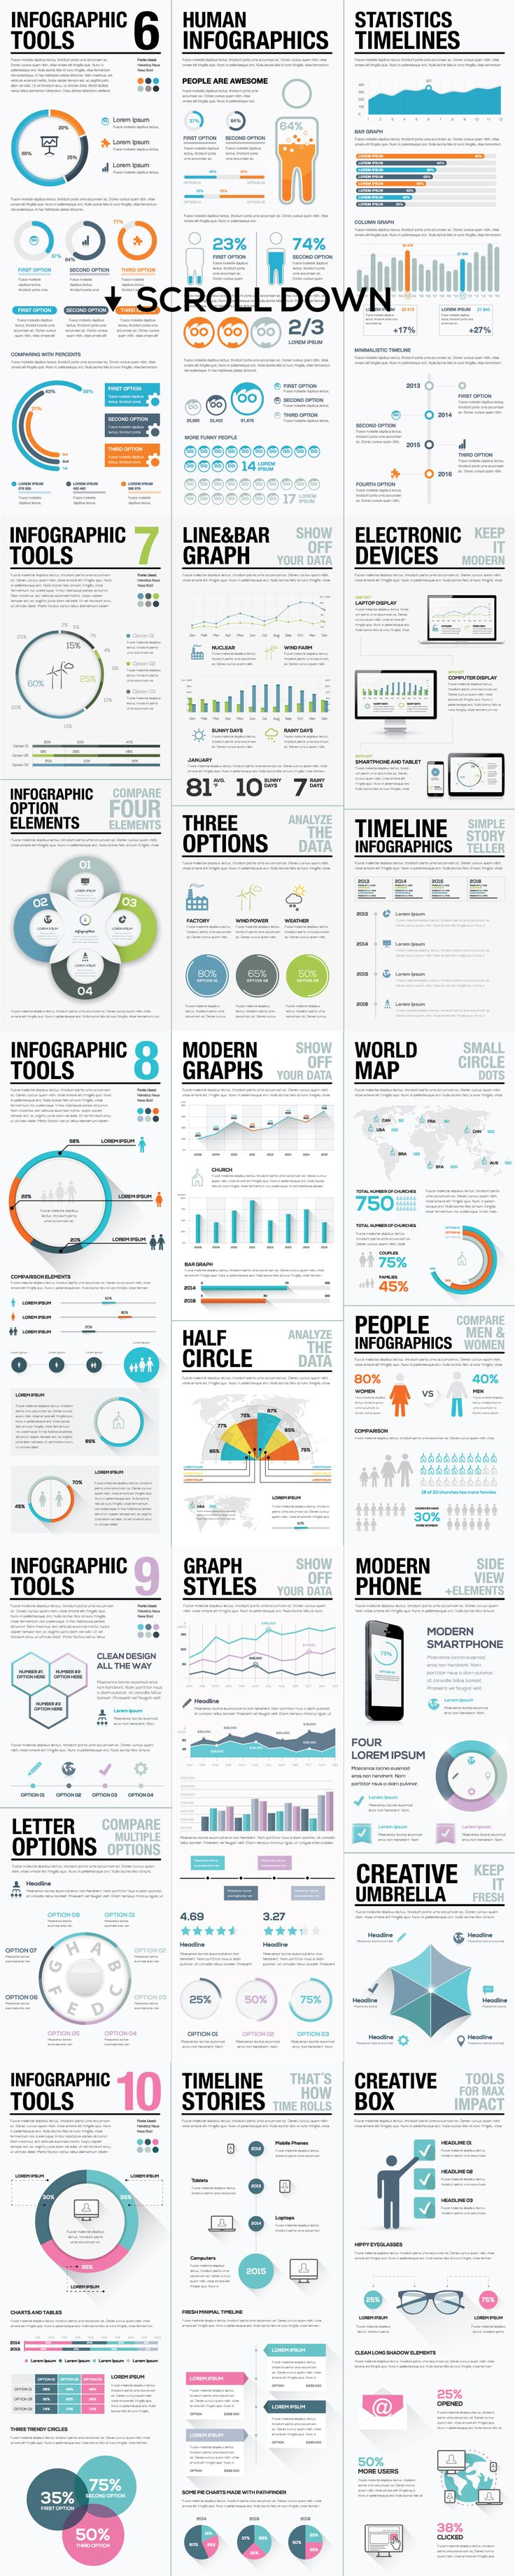 Poster design on powerpoint - The 25 Best Poster Presentation Template Ideas On Pinterest Powerpoint Poster Powerpoint Poster Template And Presentation Design